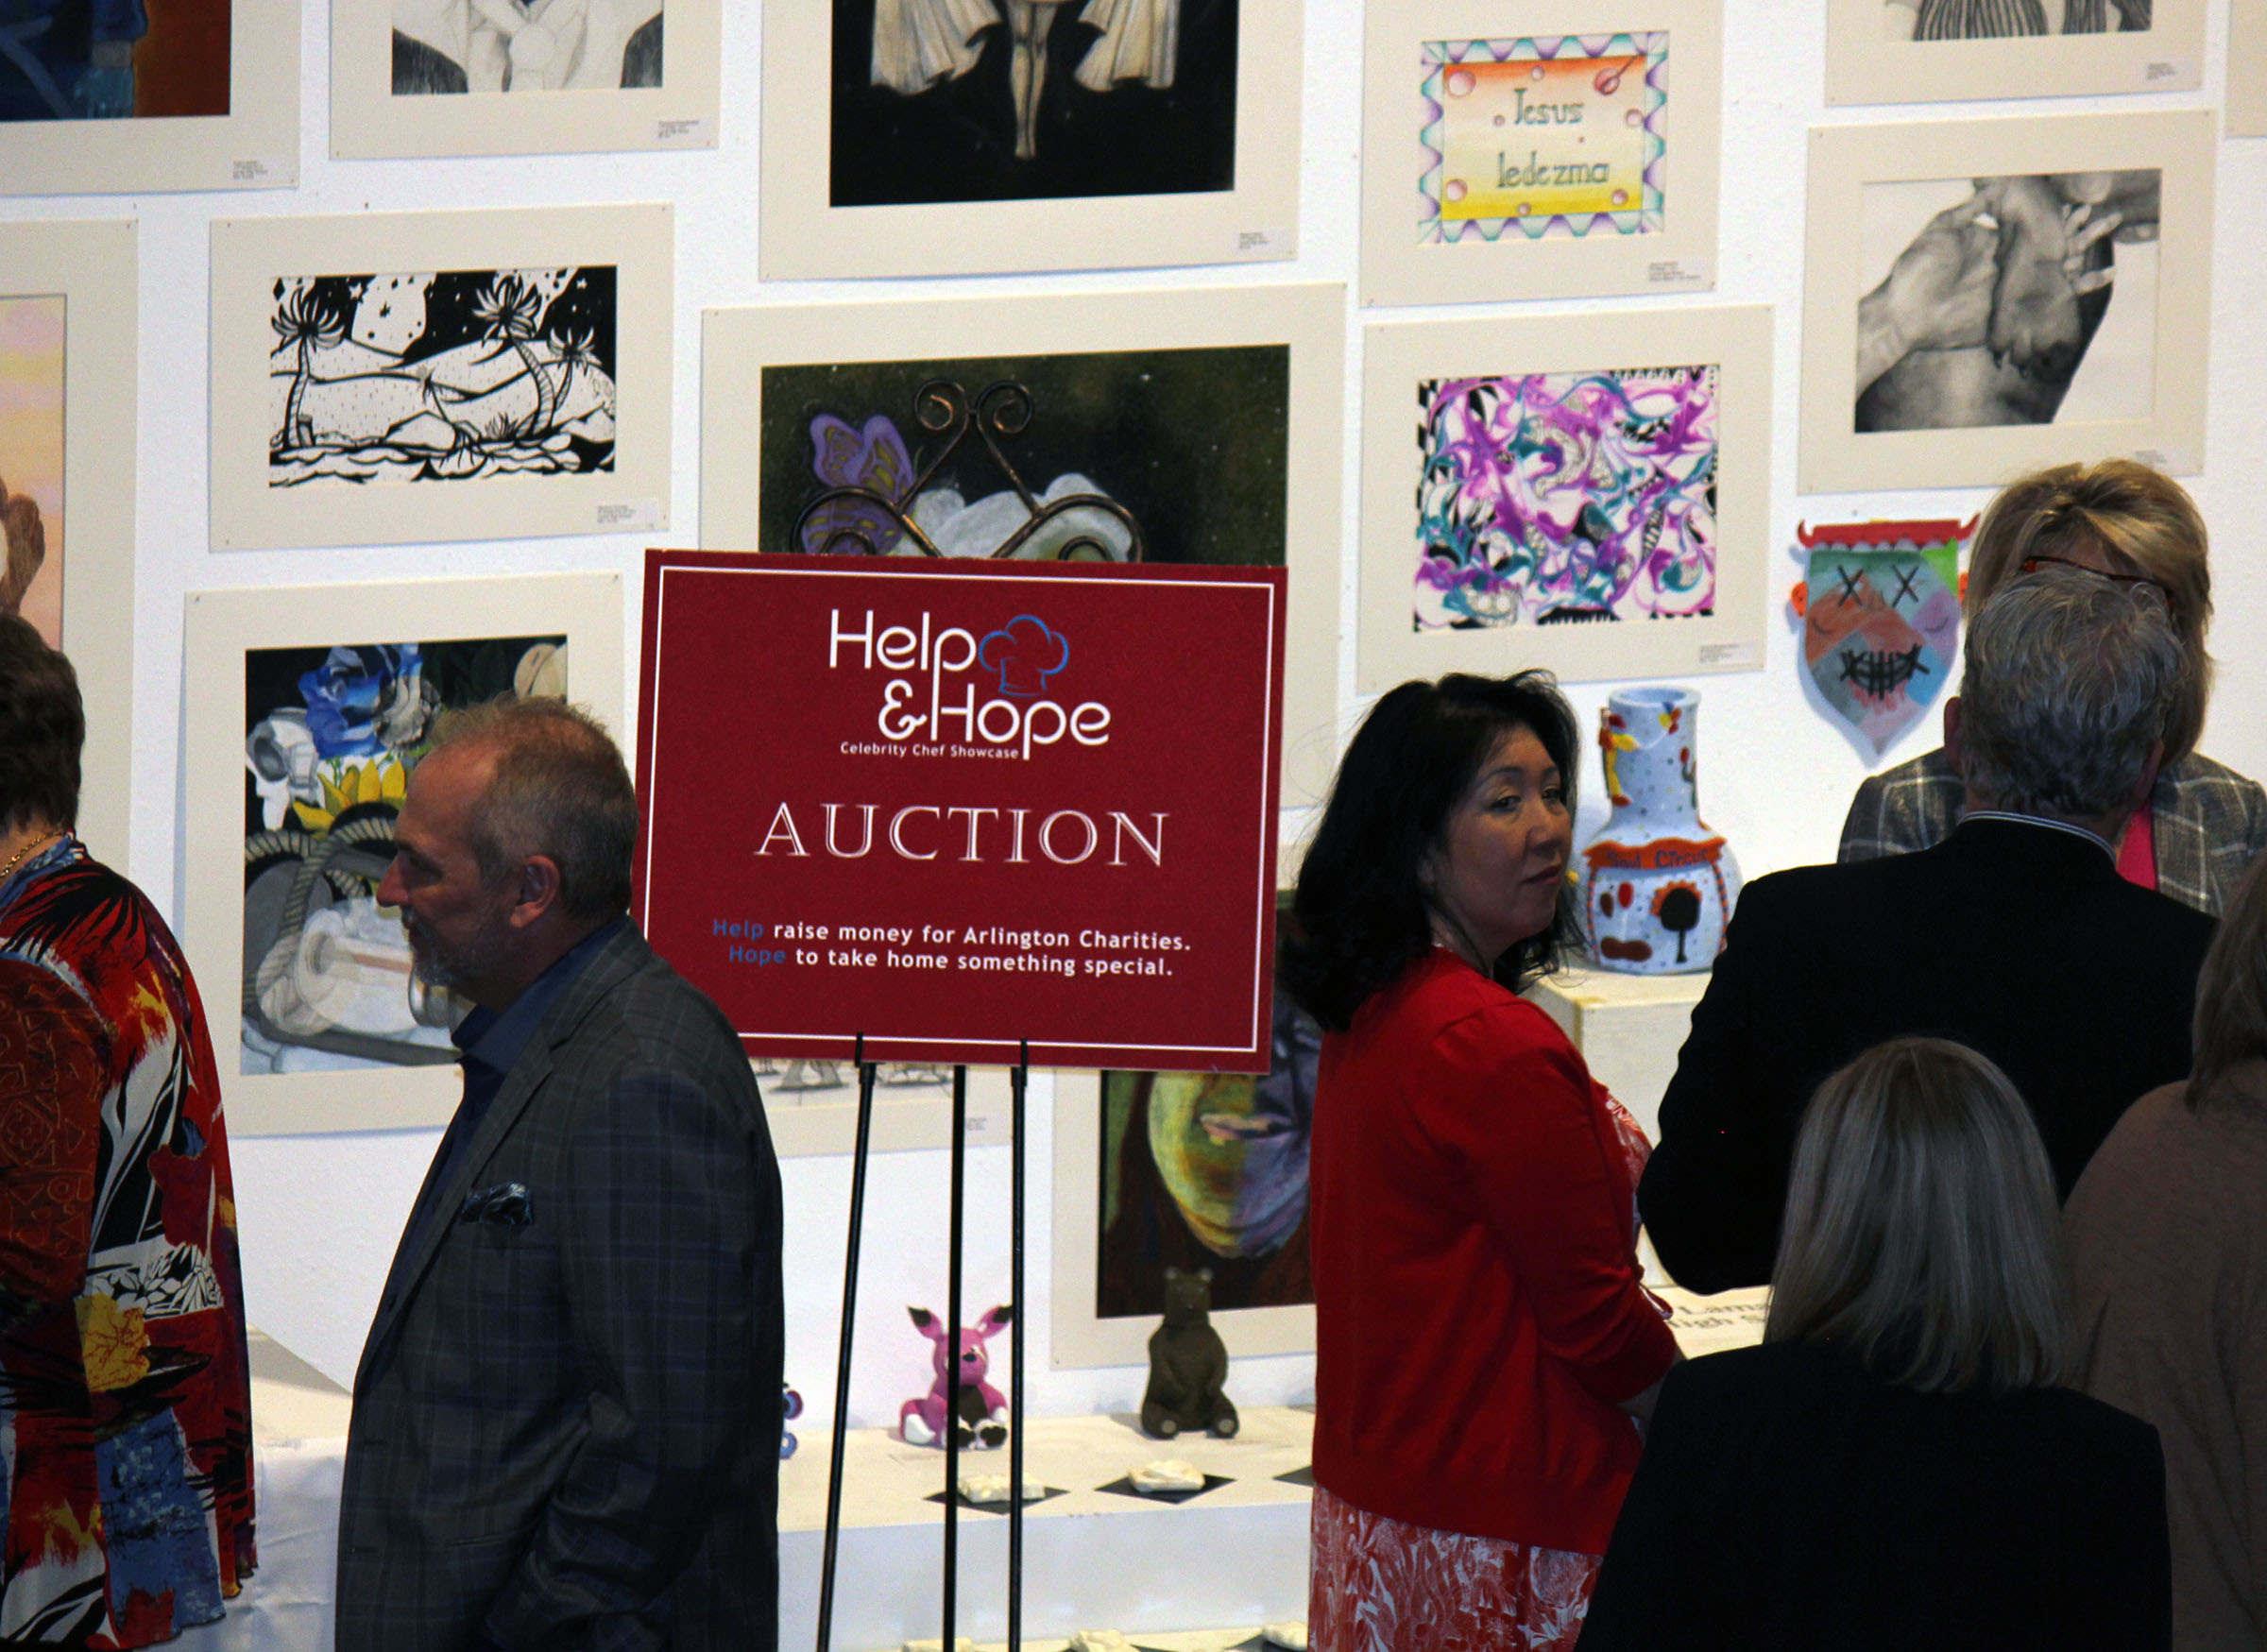 auction sign with crowd